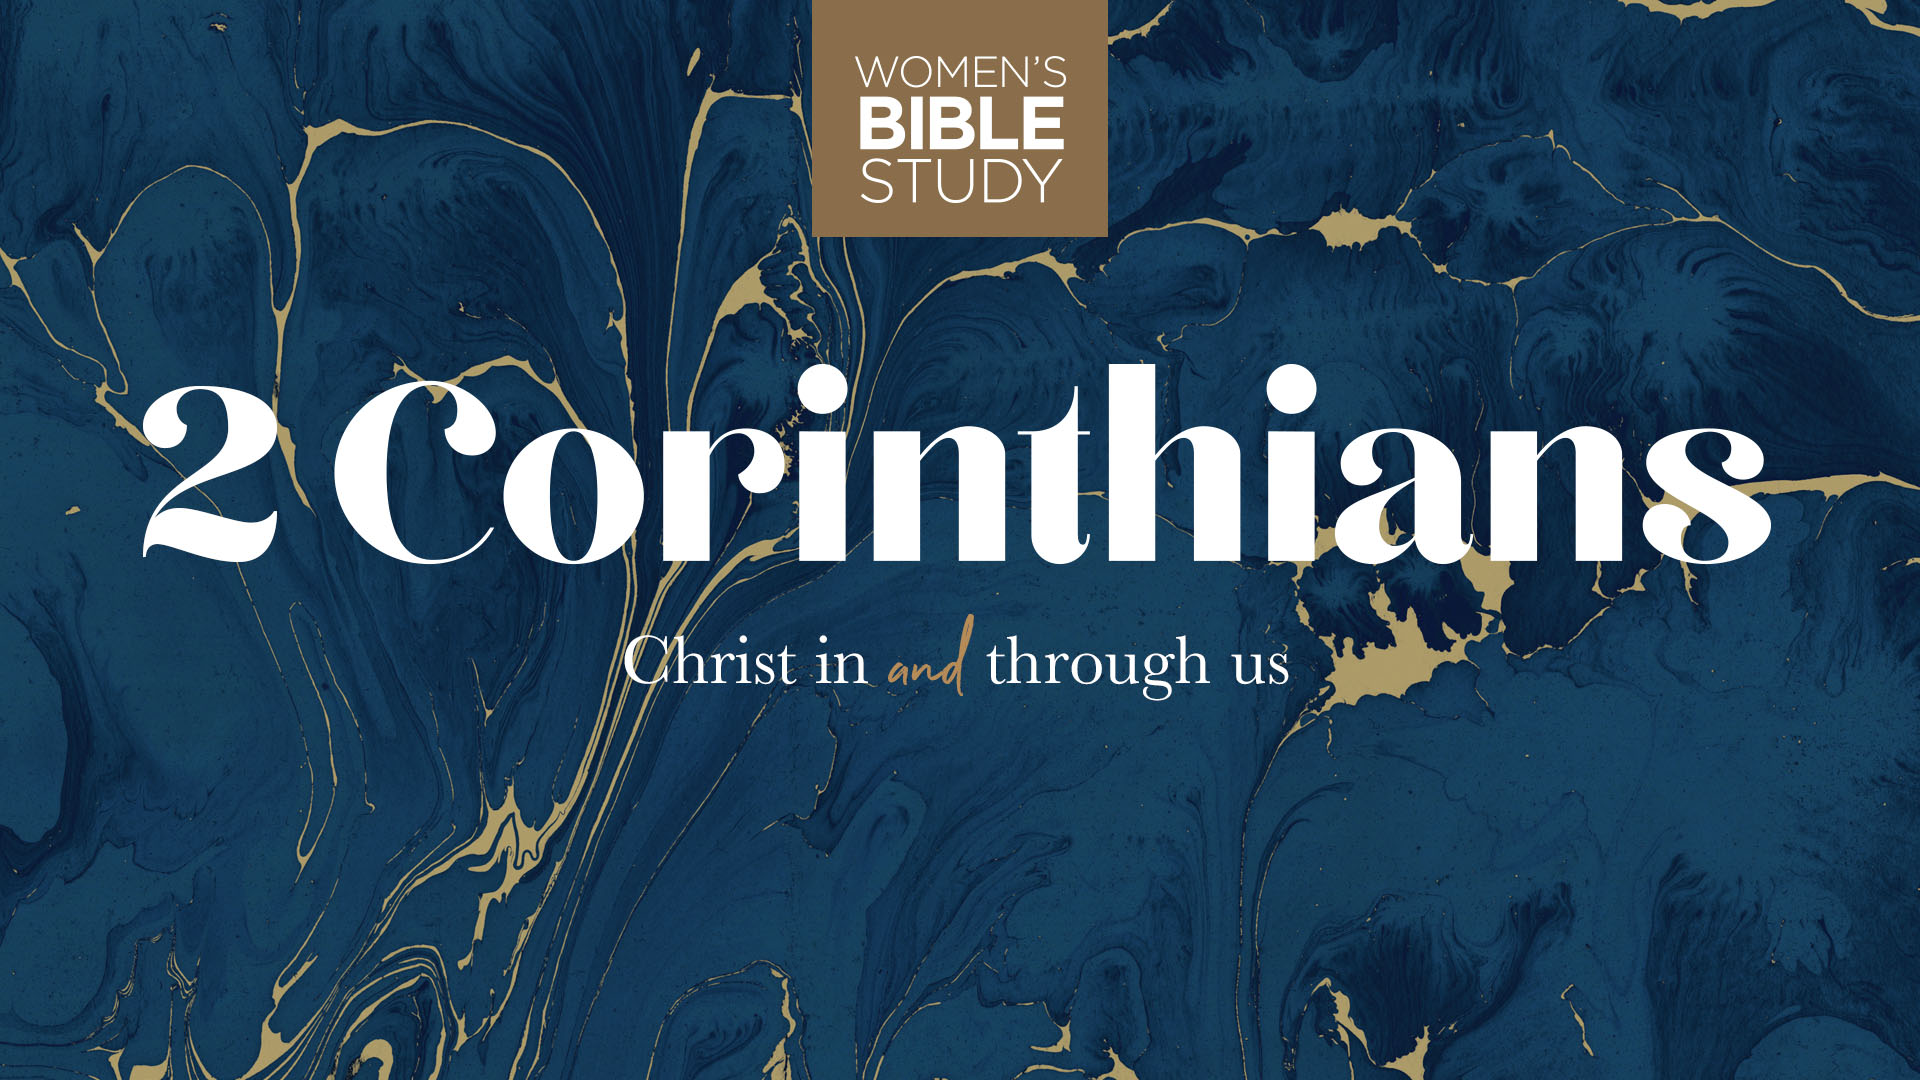 2 Corinthians 3 - The Ministry of the Spirit